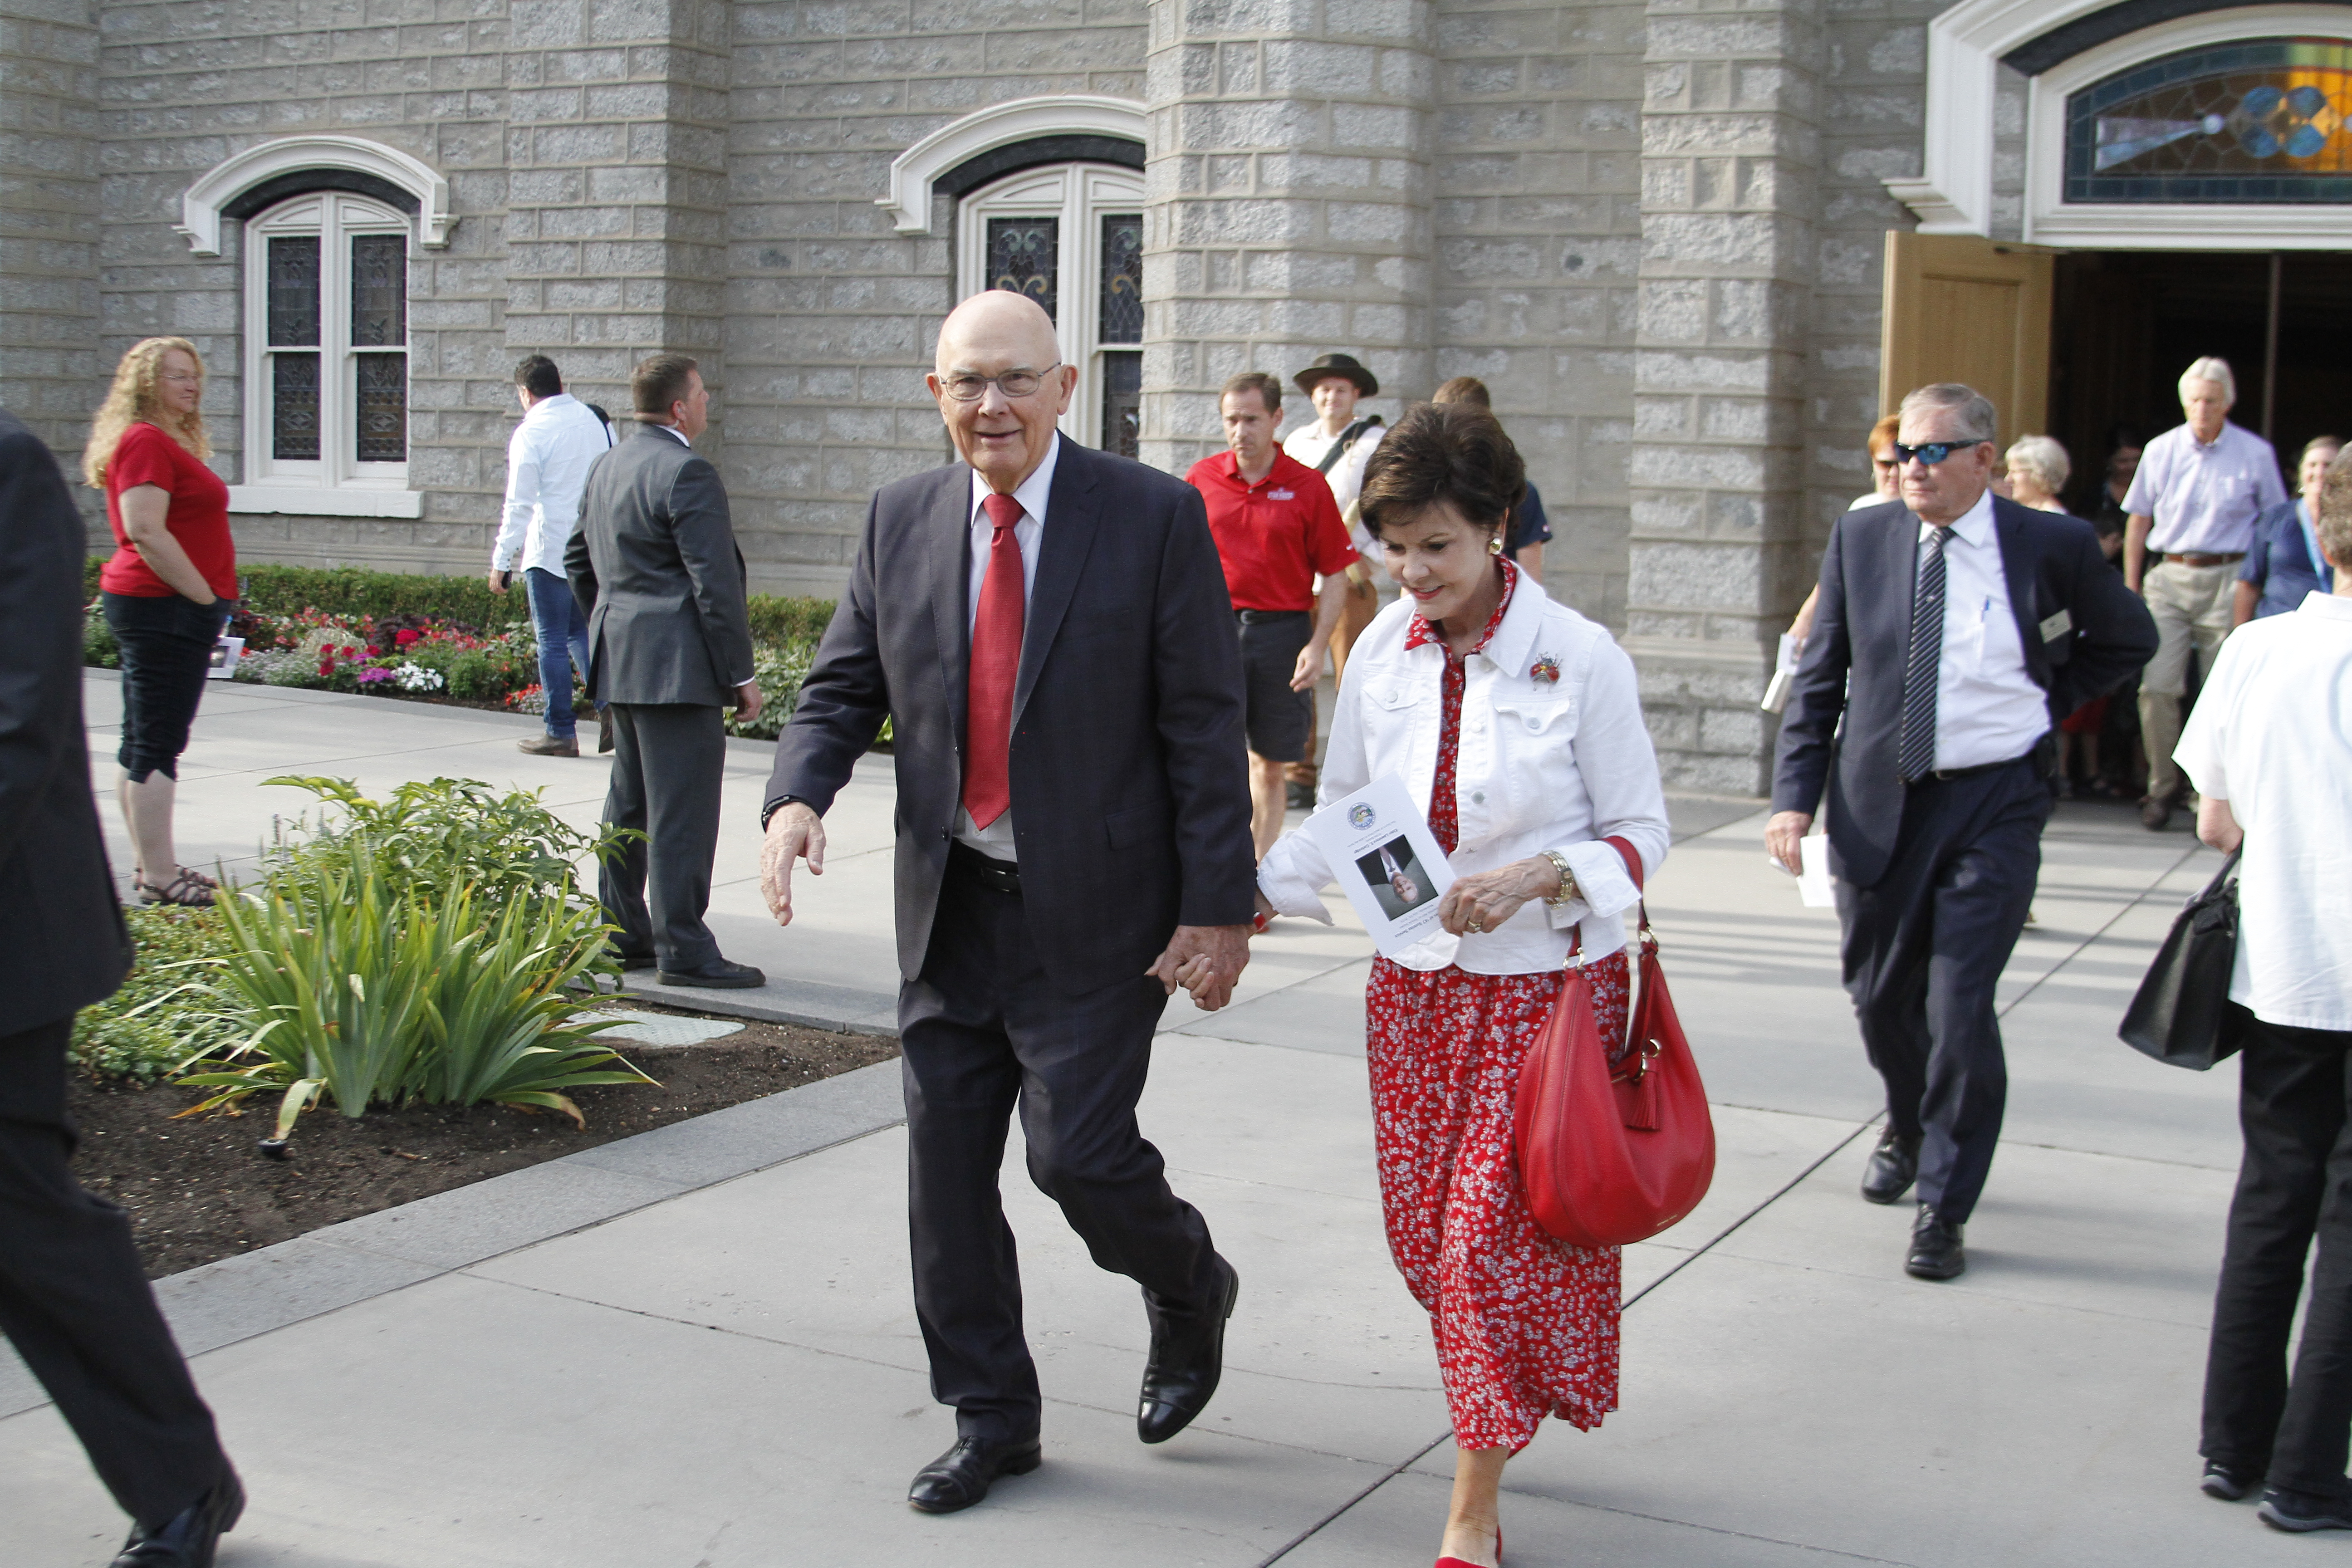 President Dallin H. Oaks of the First Presidency and his wife, Sister Kristen Oaks, walking out of the the Assembly Hall on Temple Square after the Days of '47 Sunrise Service July 24, 2019.